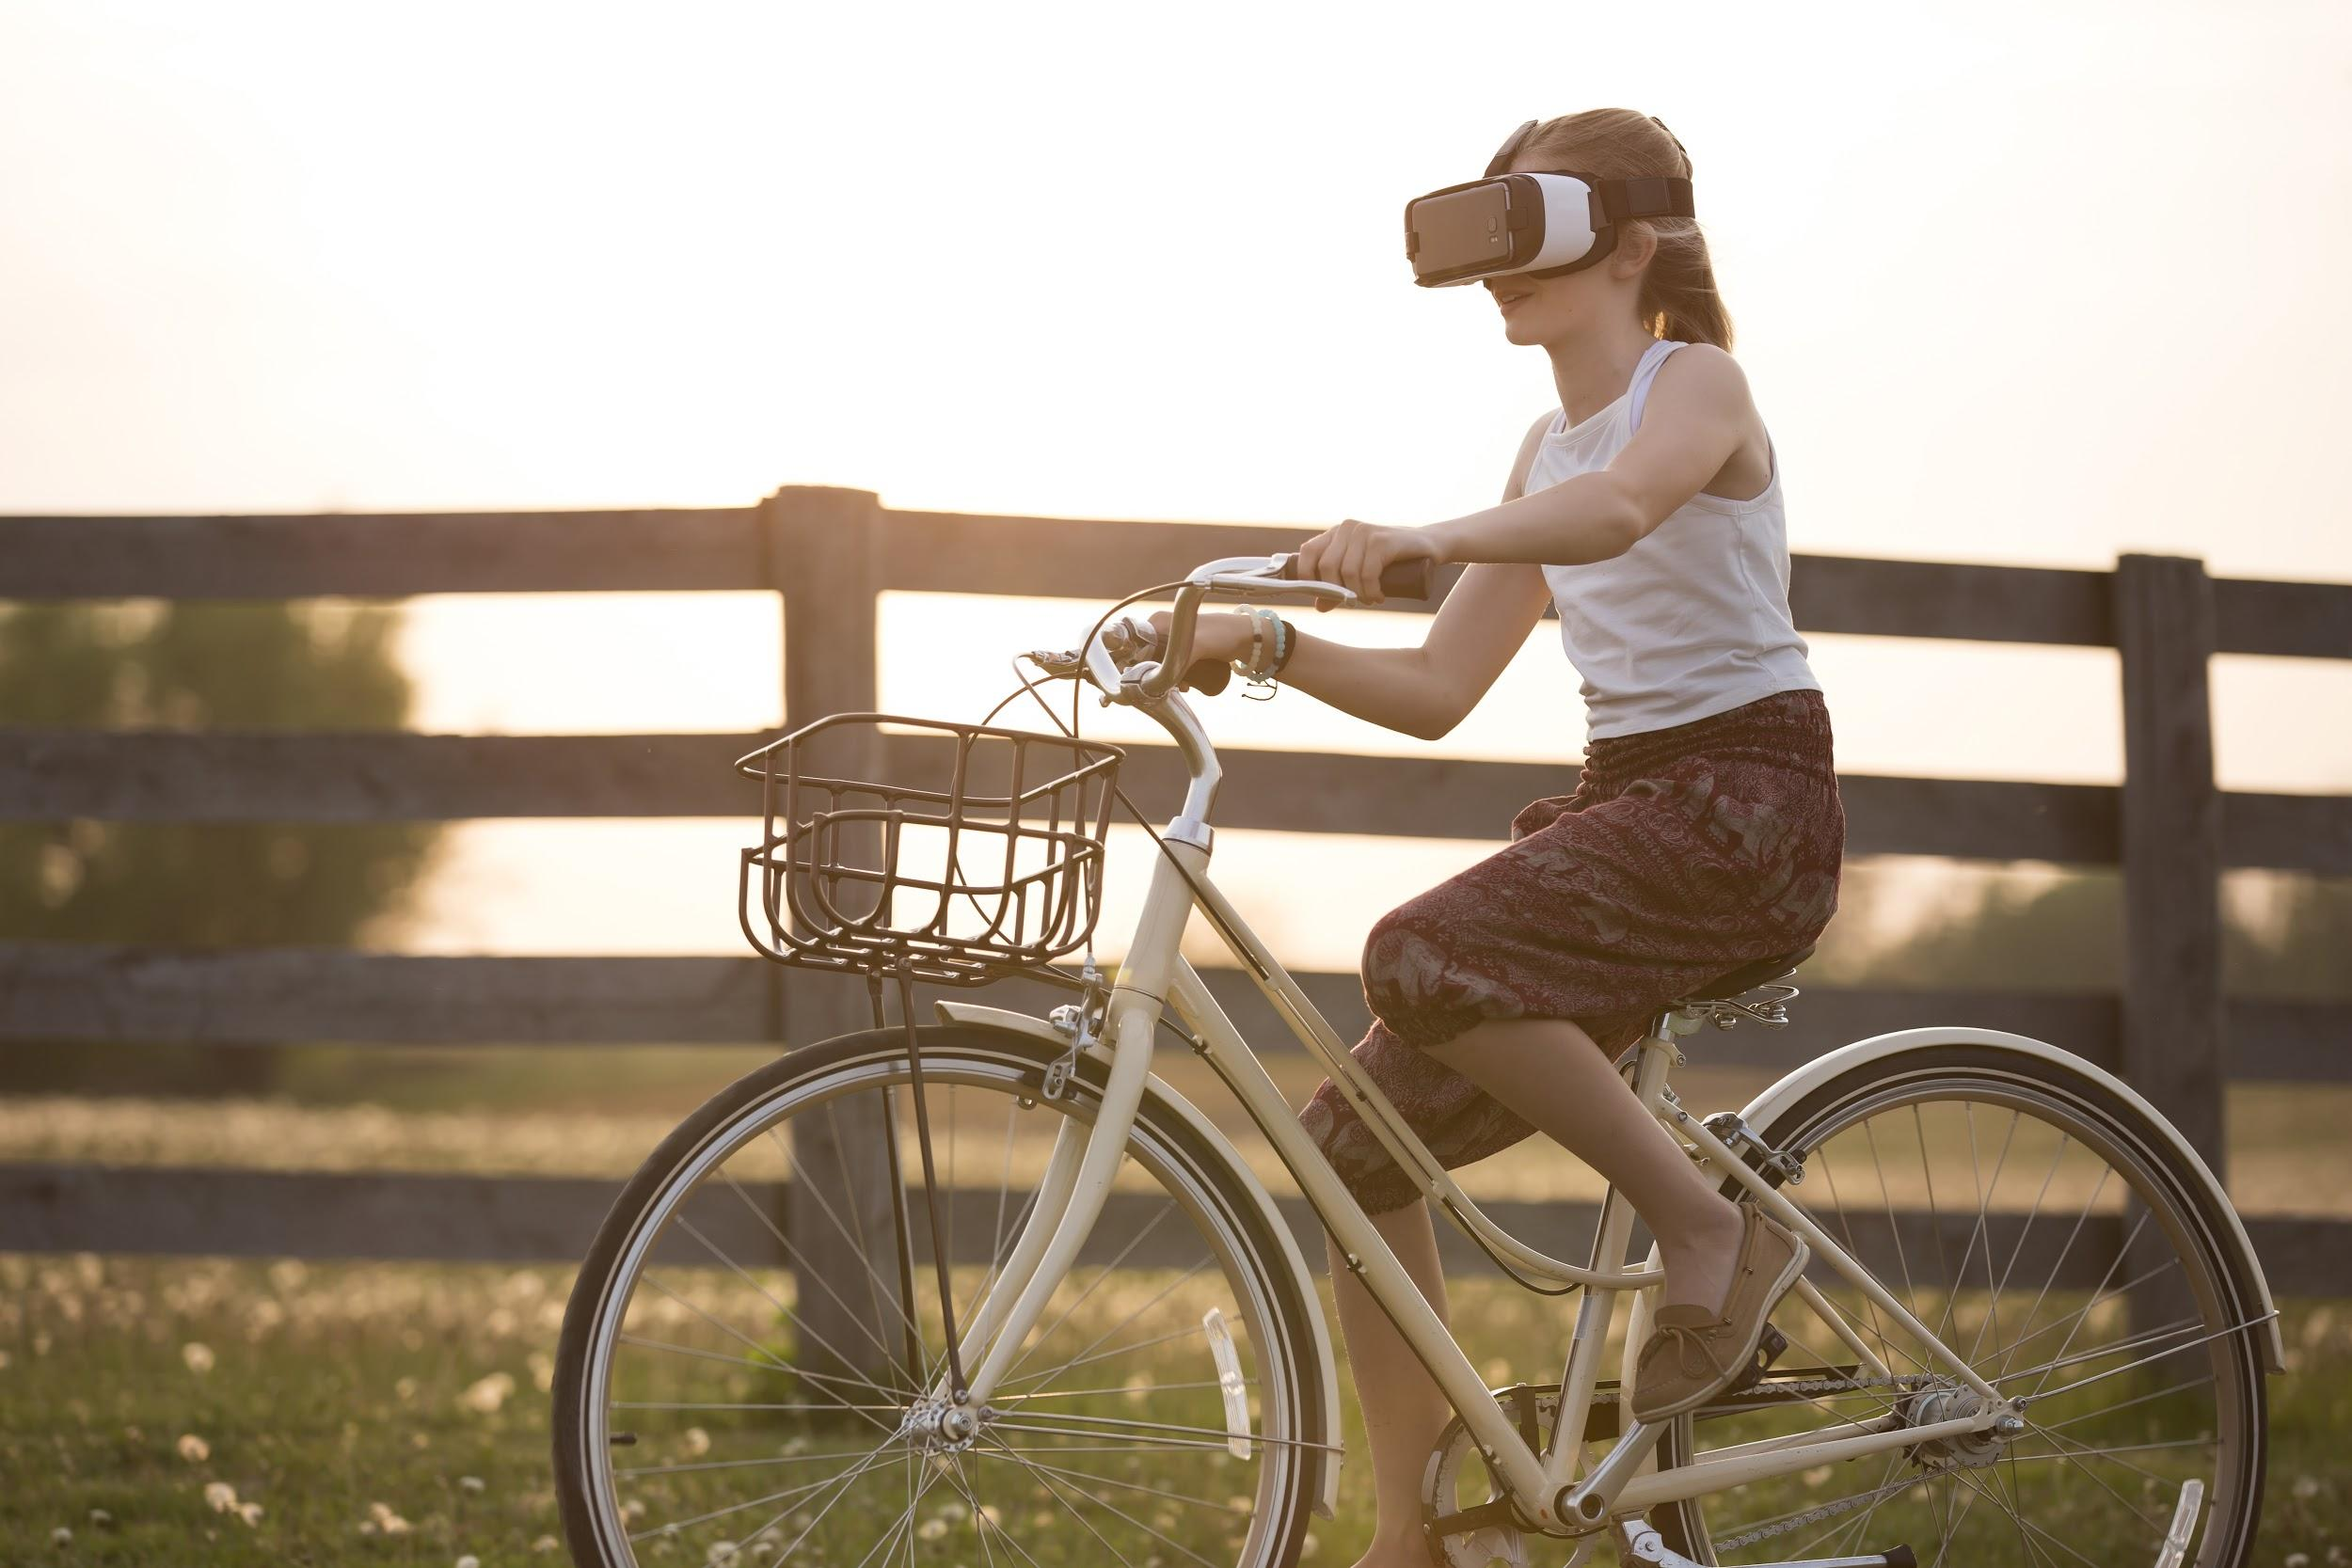 vr headset wearer on a bicycle